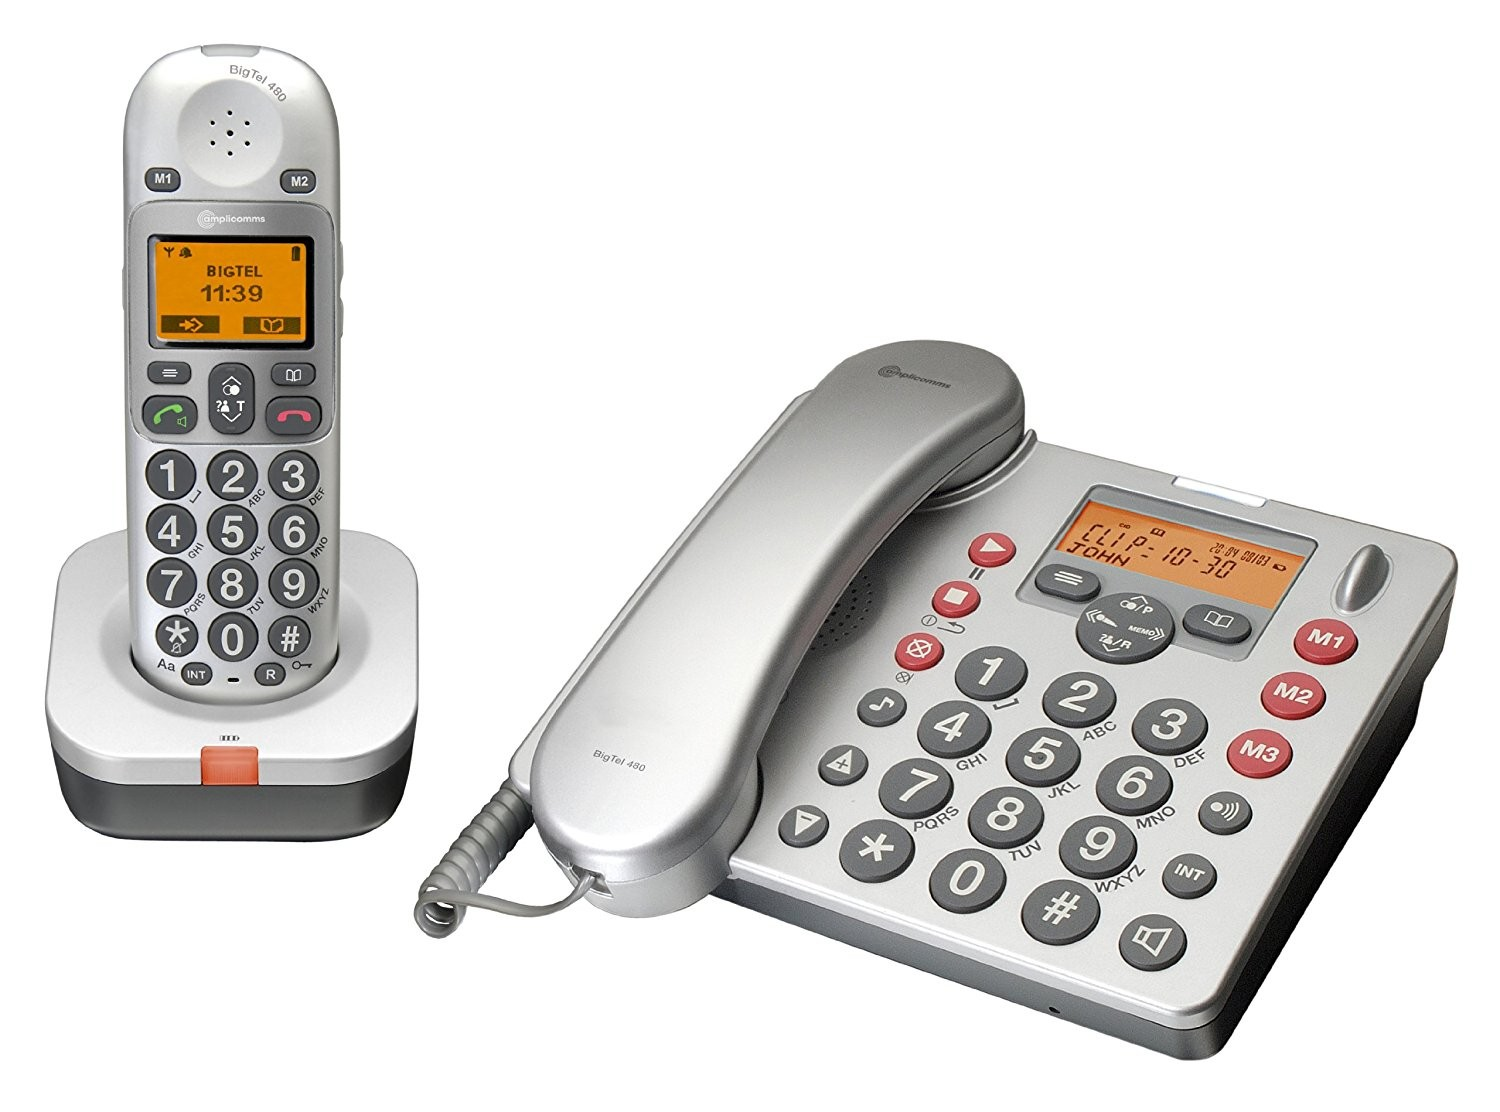 Amplicomms BigTel 480 Amplified DECT Corded Telephone & Answering Machine With A Cordless Handset